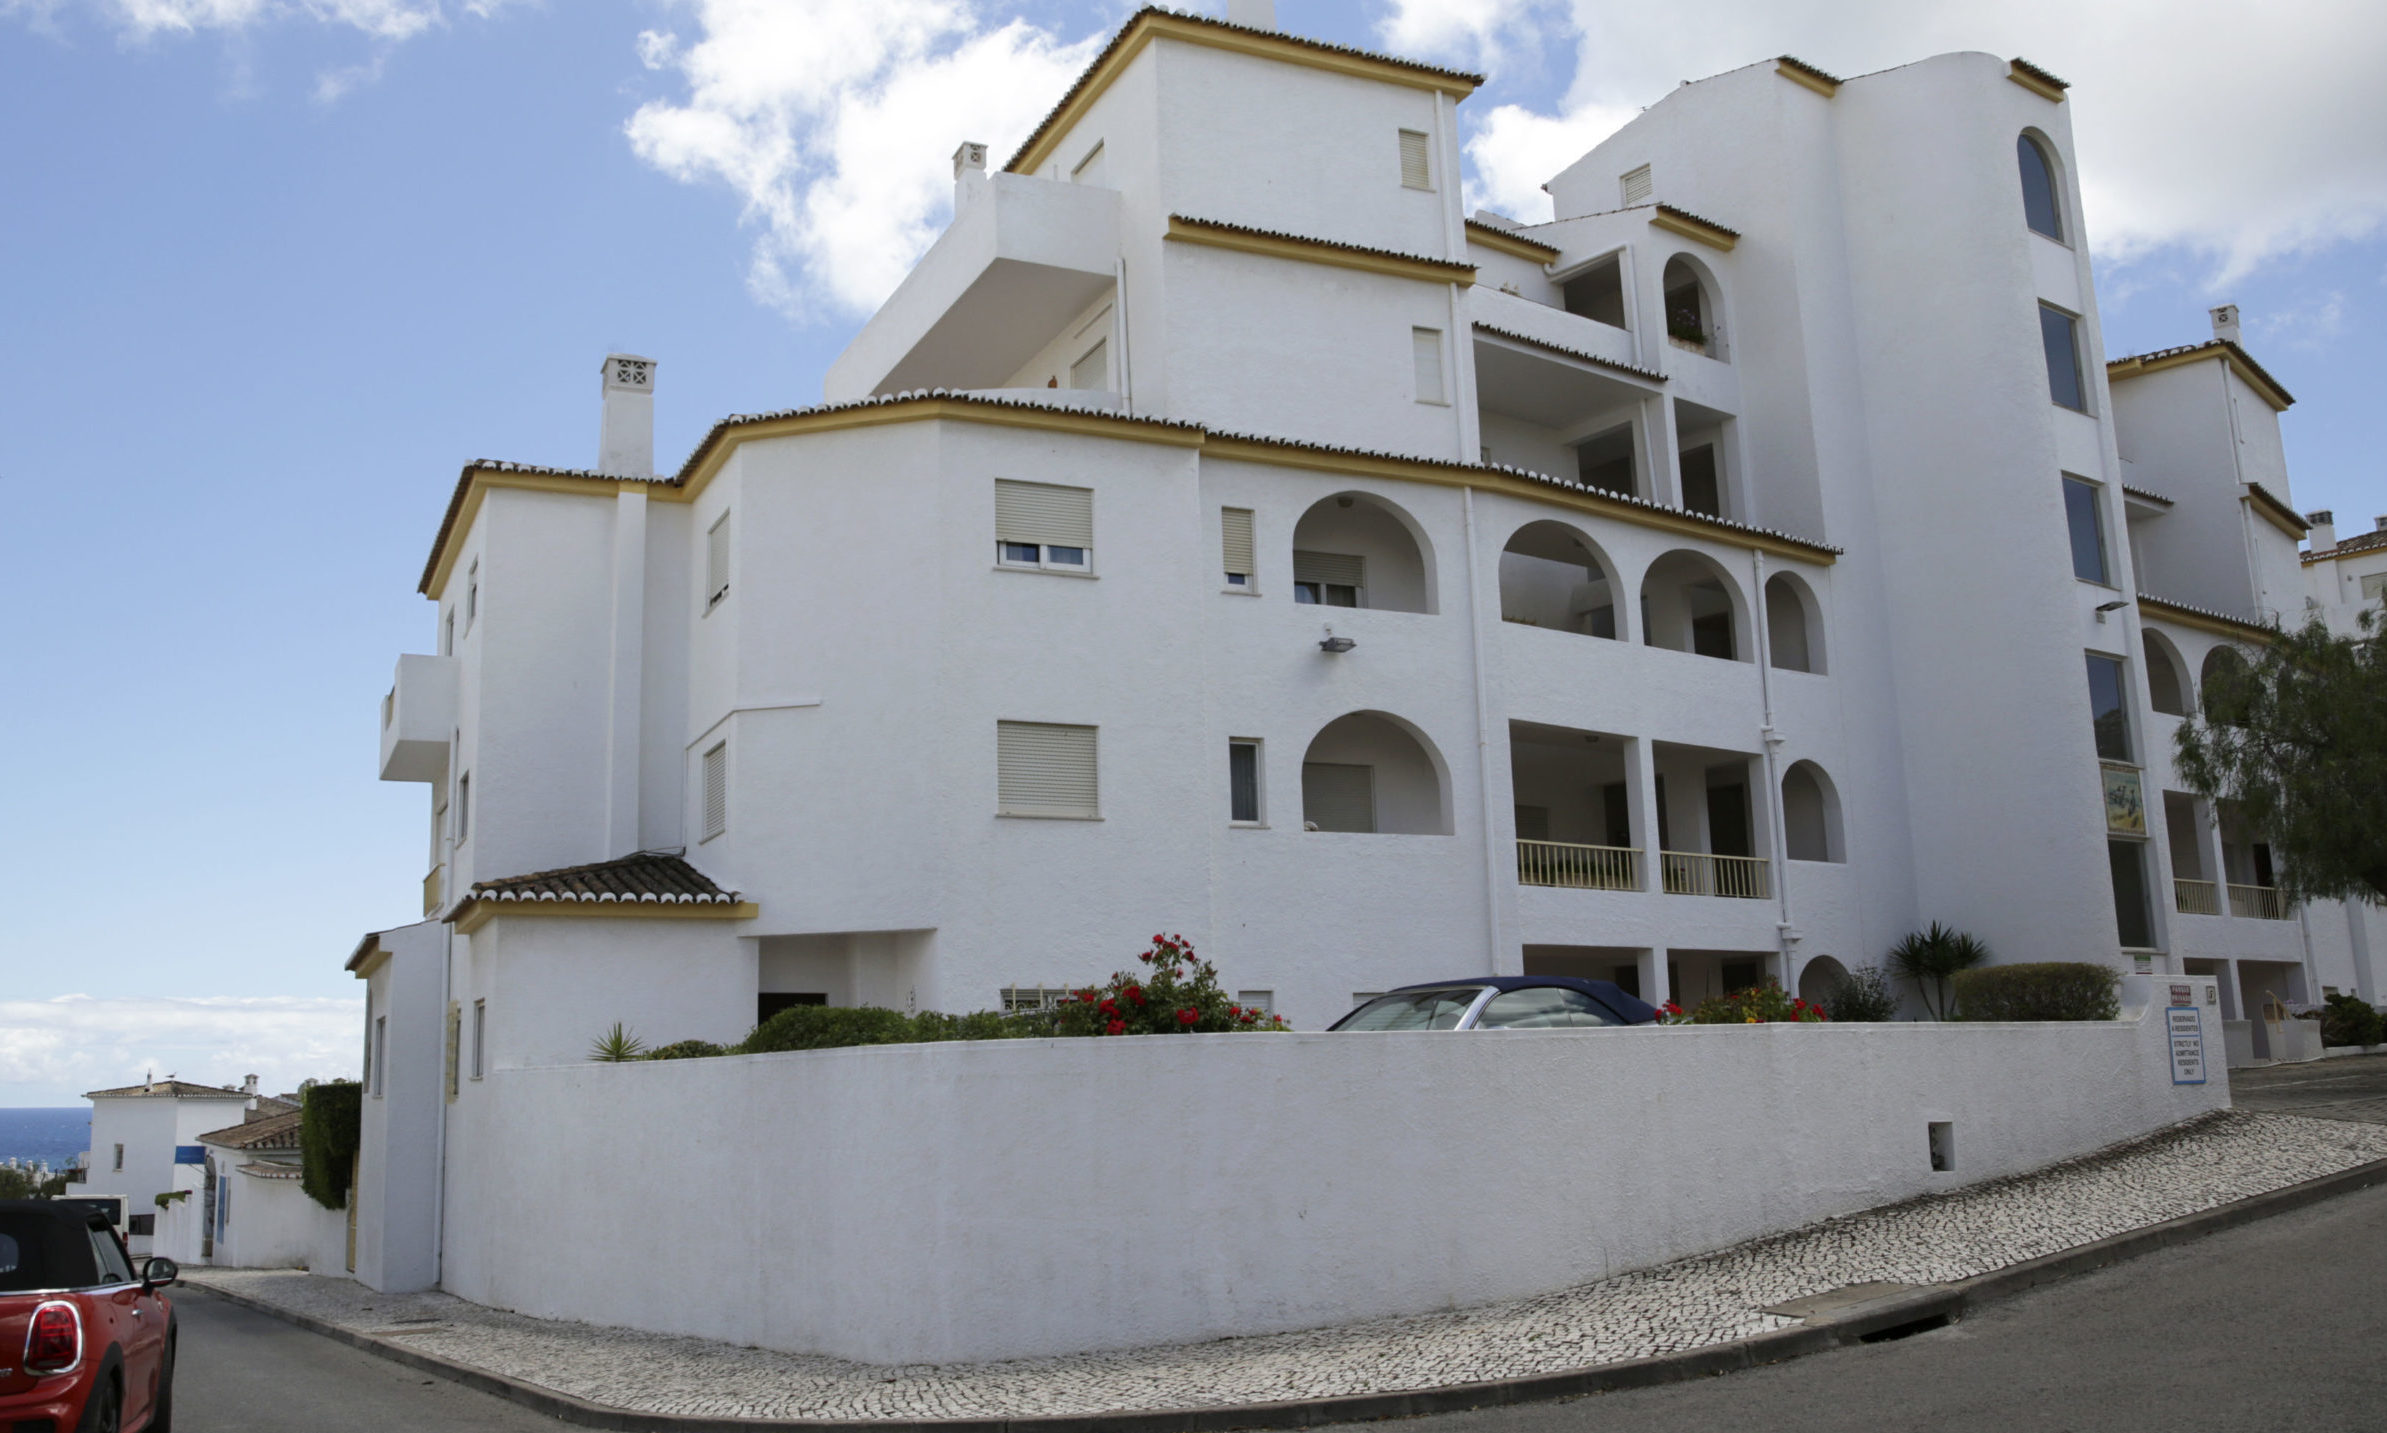 A view of the block of apartments from where British girl Madeleine McCann disappeared in 2007, in Praia da Luz, in Portugal's Algarve coast.